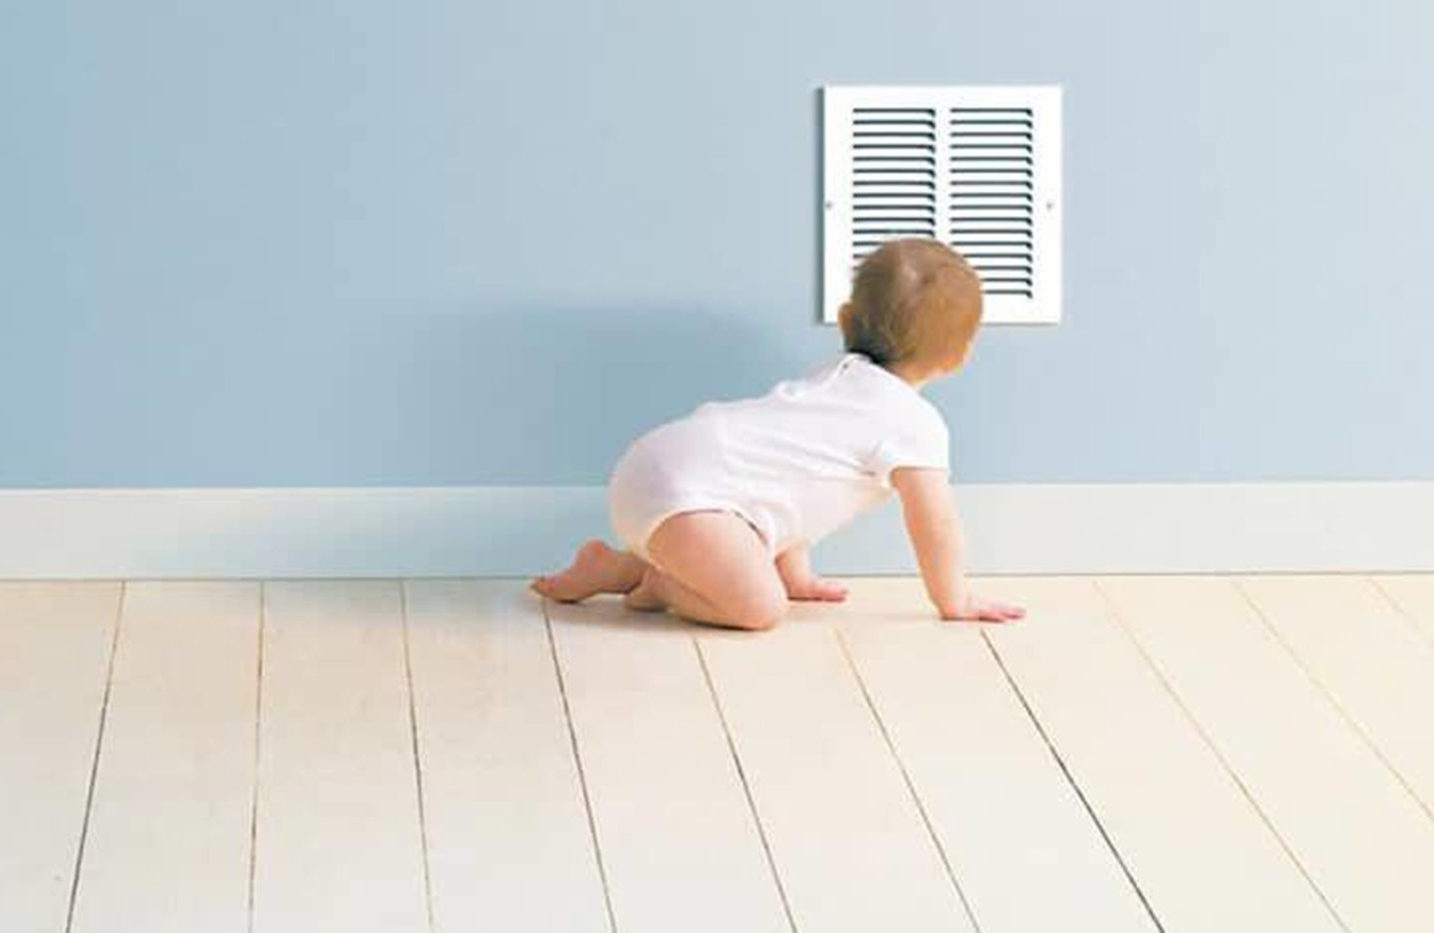 https://schaumburgairducts.com/wp-content/uploads/2020/01/eco-air-ducts-family-breath-easy-e1578615373250.jpg